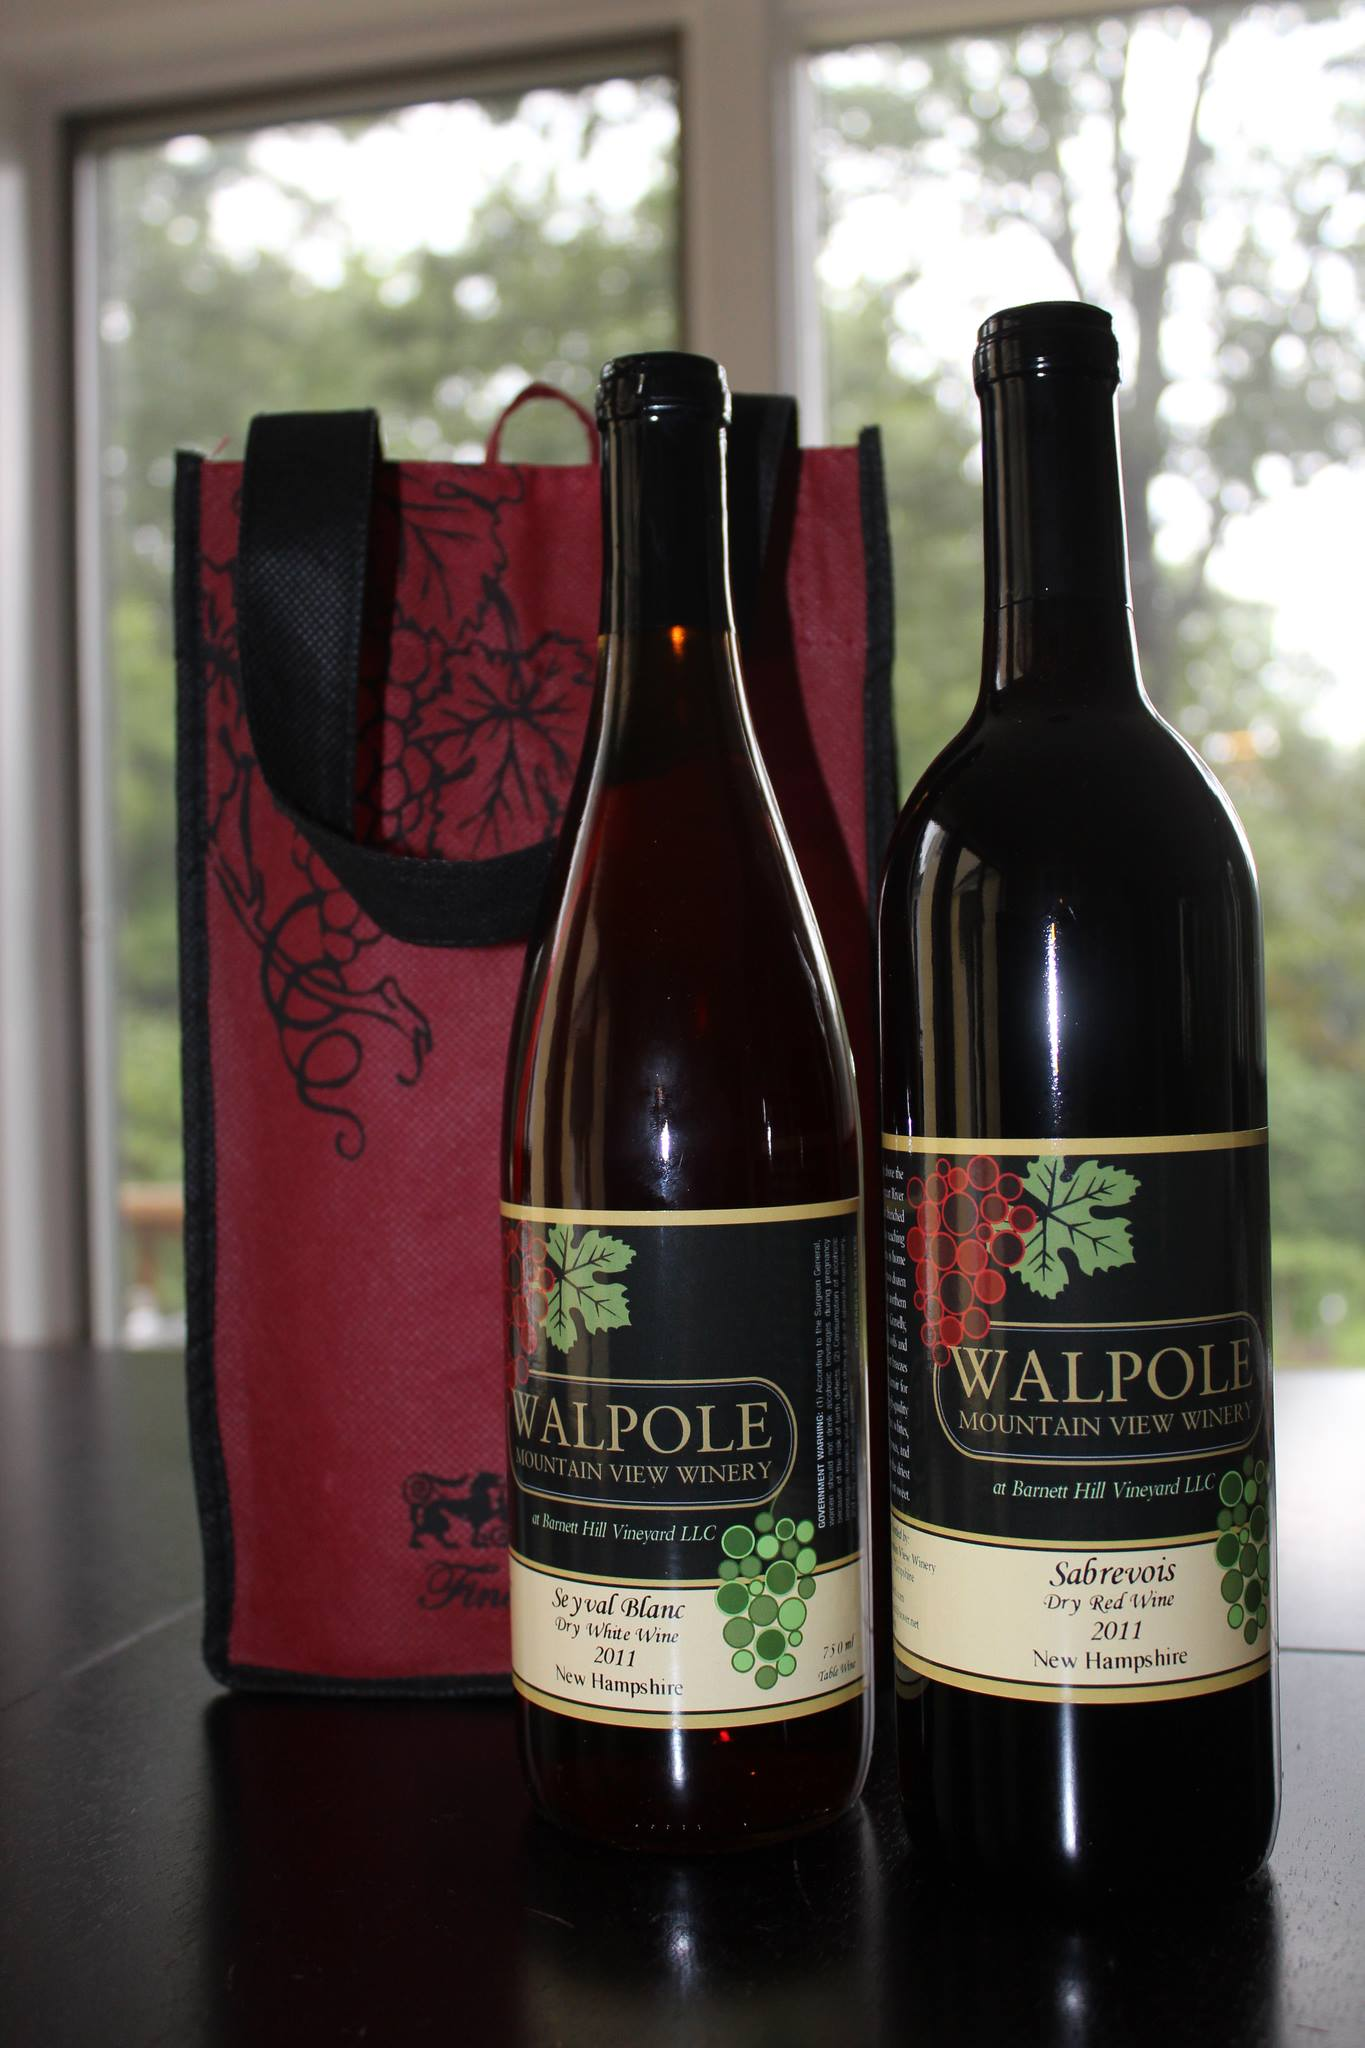 two bottles of wine from Walpole Winery sit next to a red bag